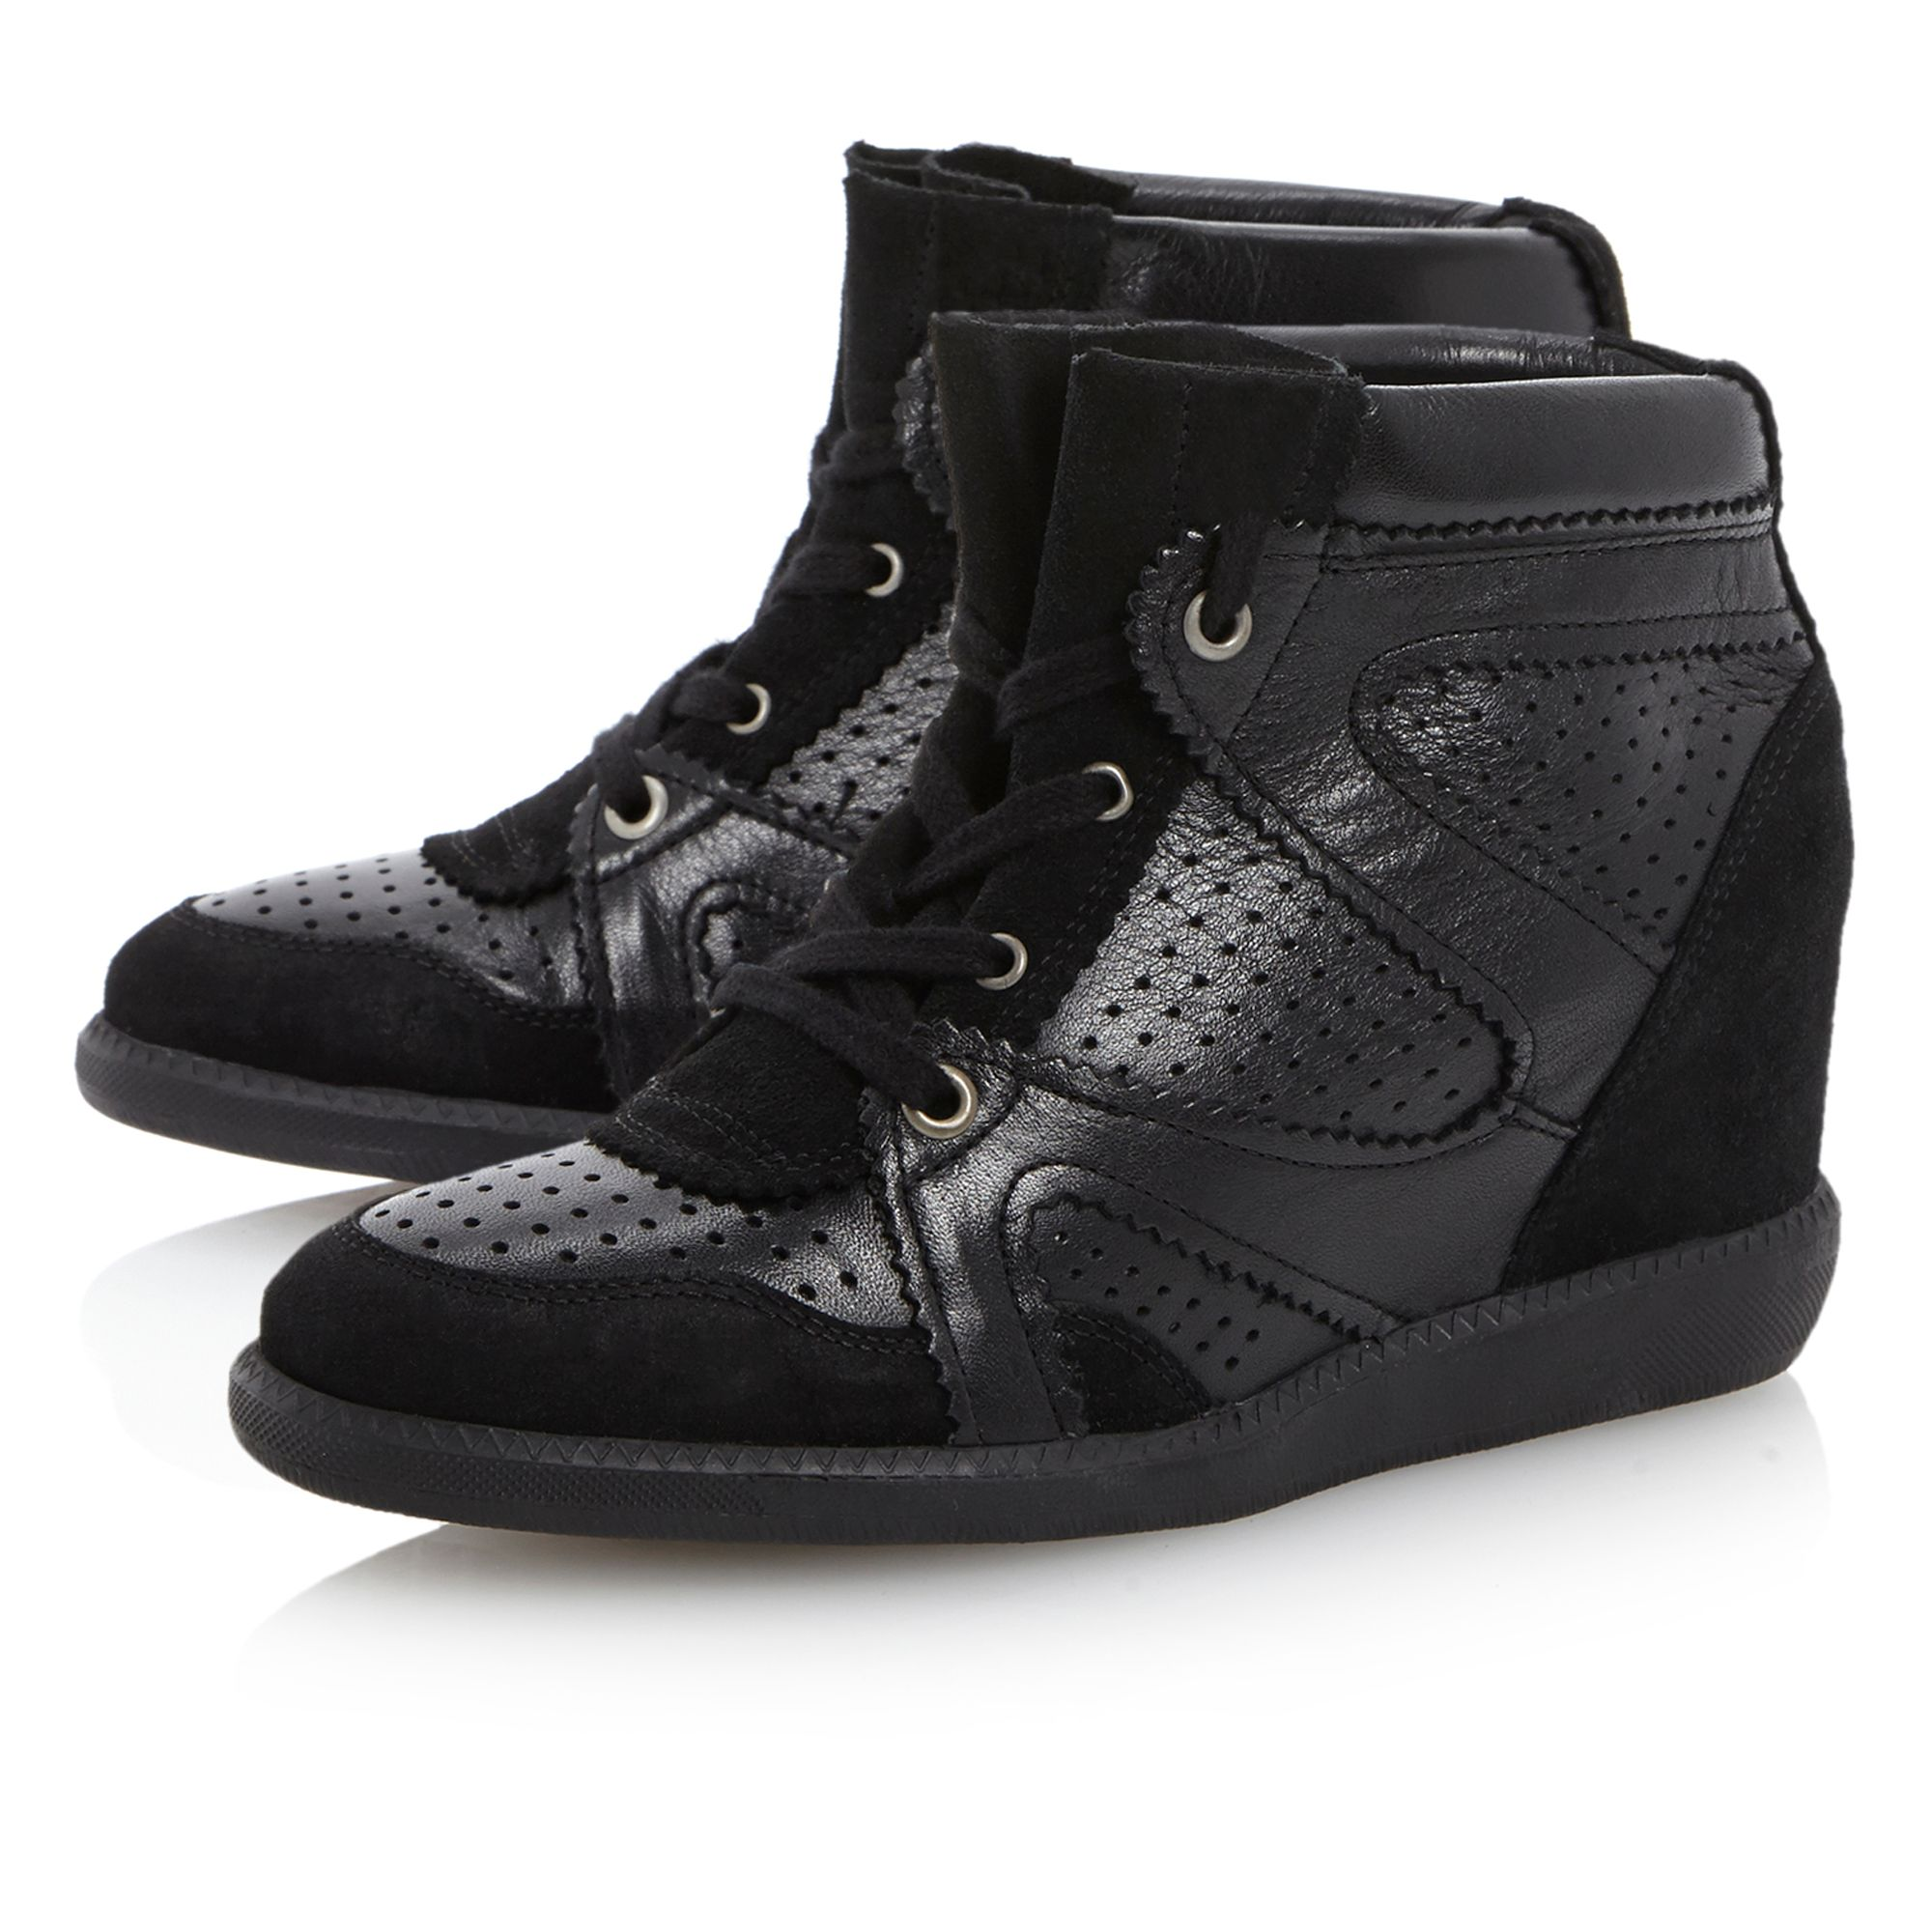 Libras wedge lace up trainers